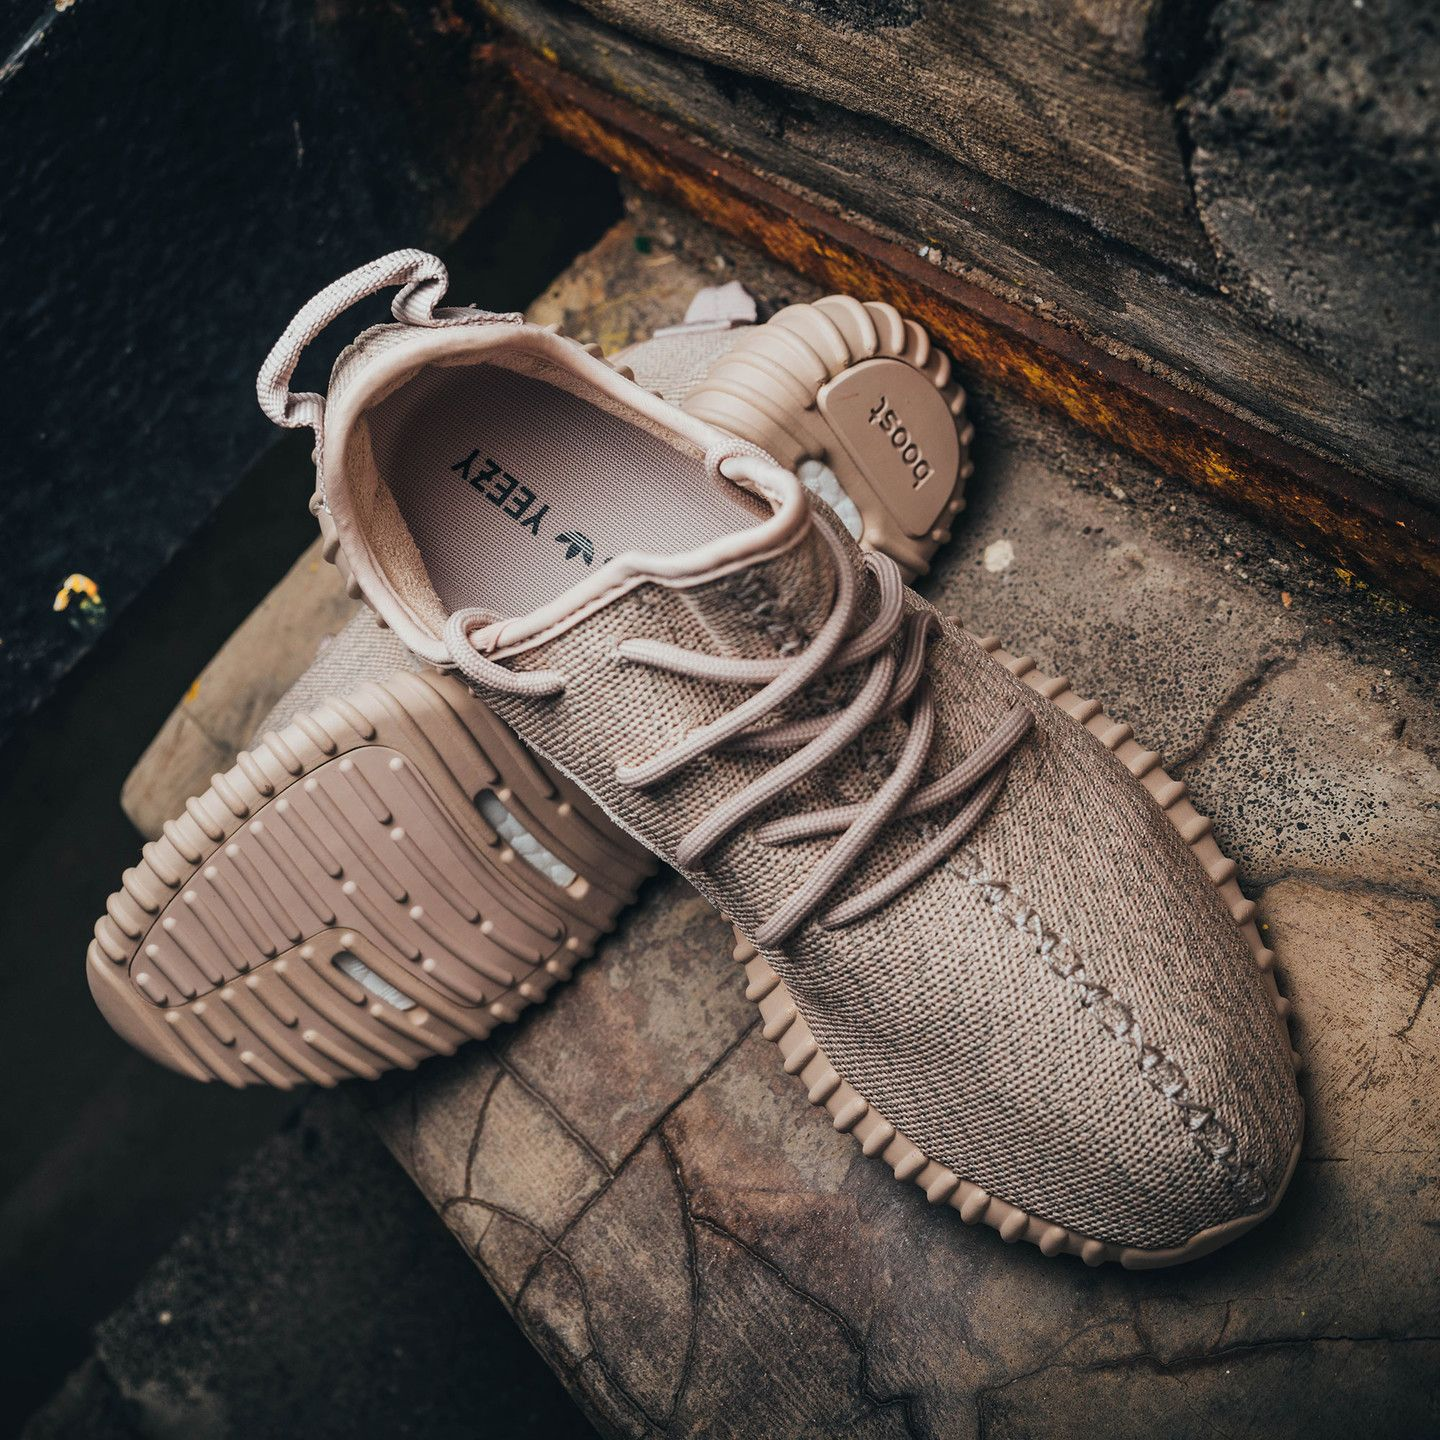 54186c43e33 Adidas Yeezy Boost 350 Light Stone   Oxford Tan AQ2661